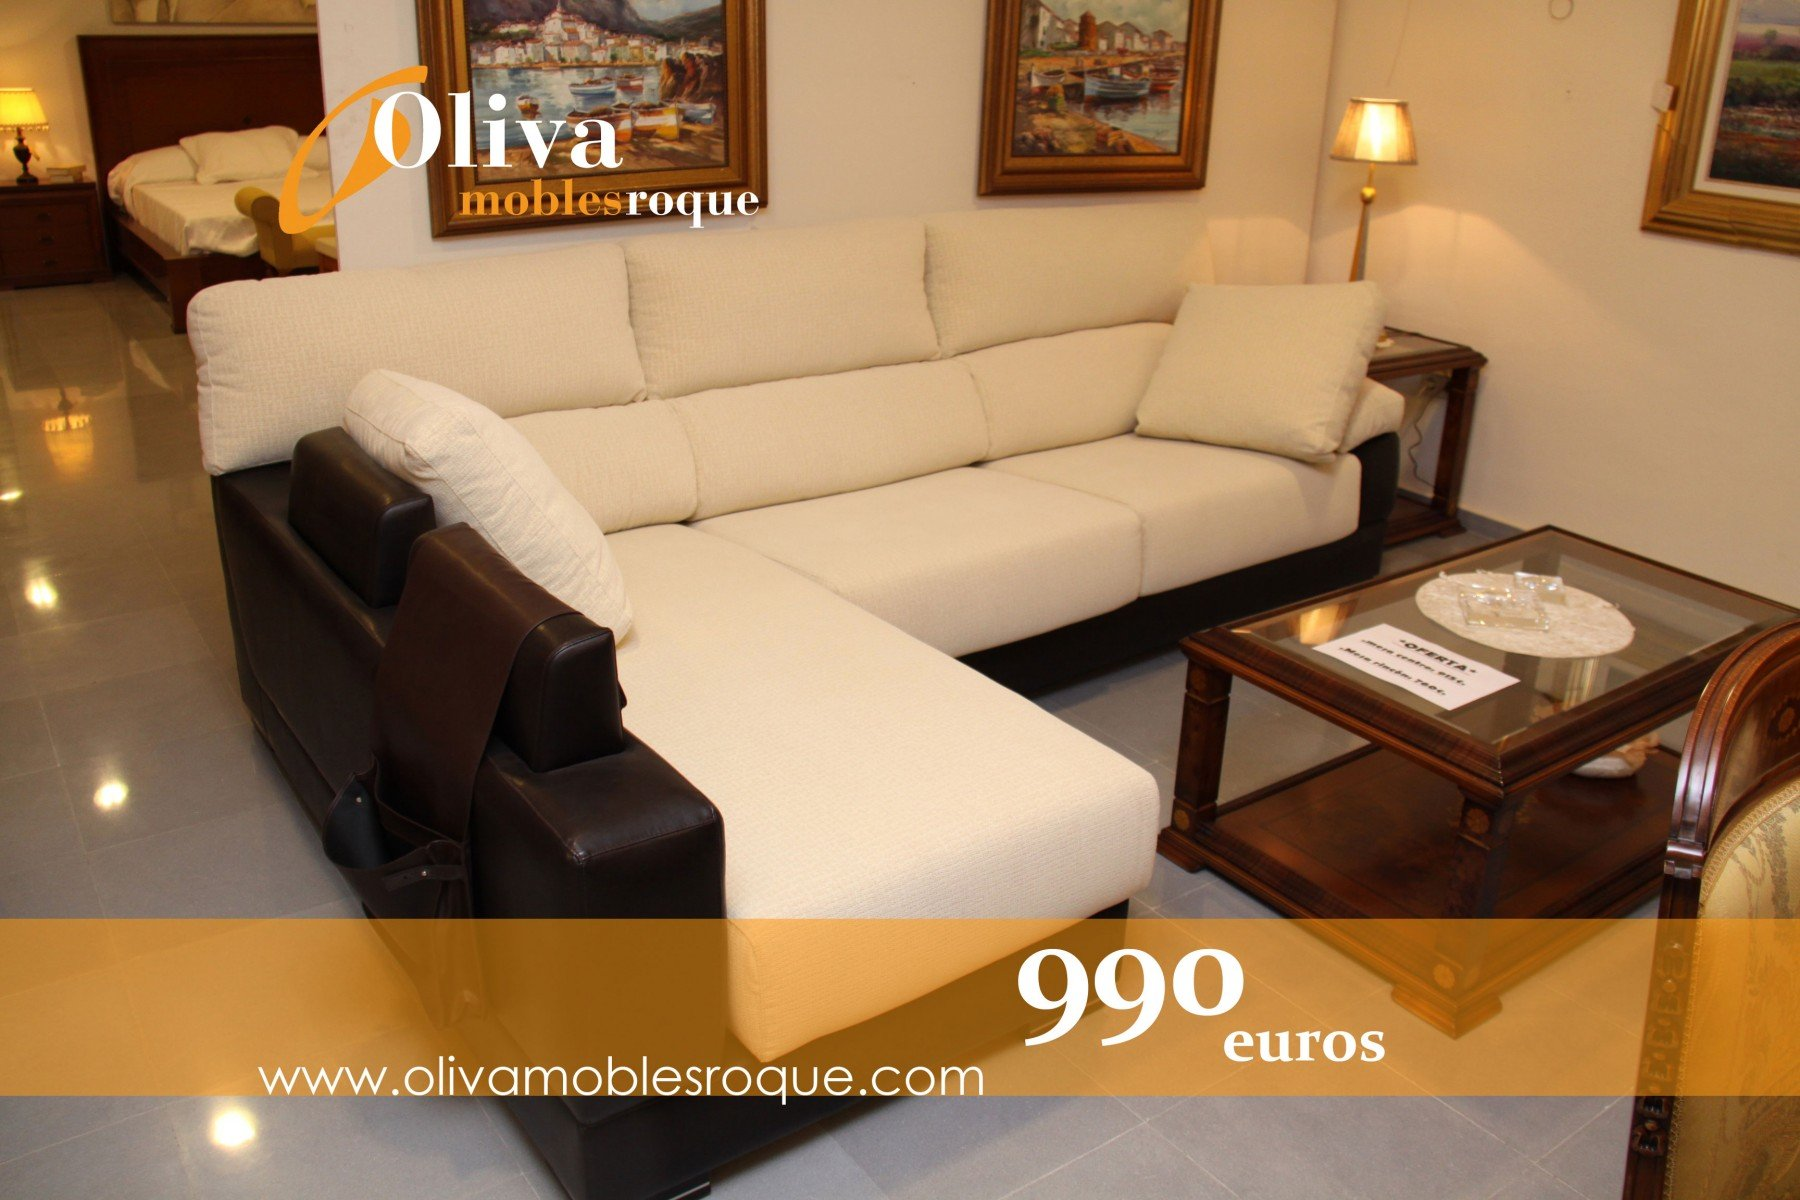 Sofa Outlet Alicante Oferta Sofa Chaise Longue De Ta Quatro Diseño A Precio Outlet